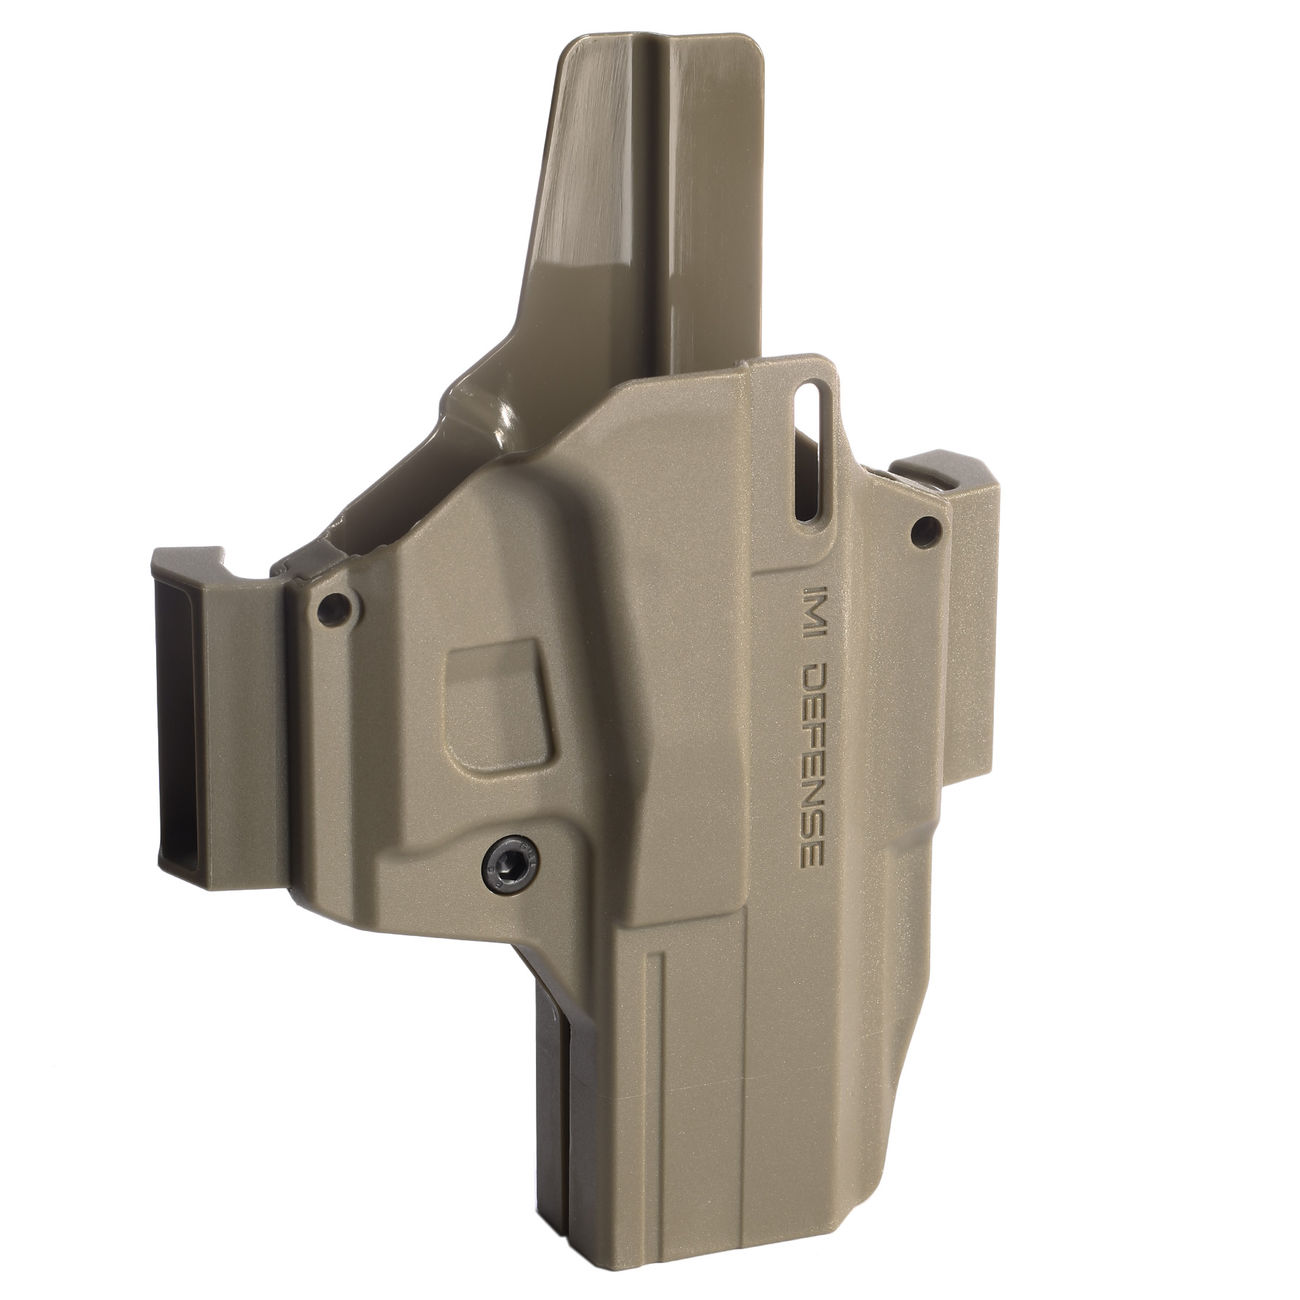 IMI Defense MORF X3 Polymer Holster IWB / OWB / Paddle für Glock 17 Rechts / Links Tan 4